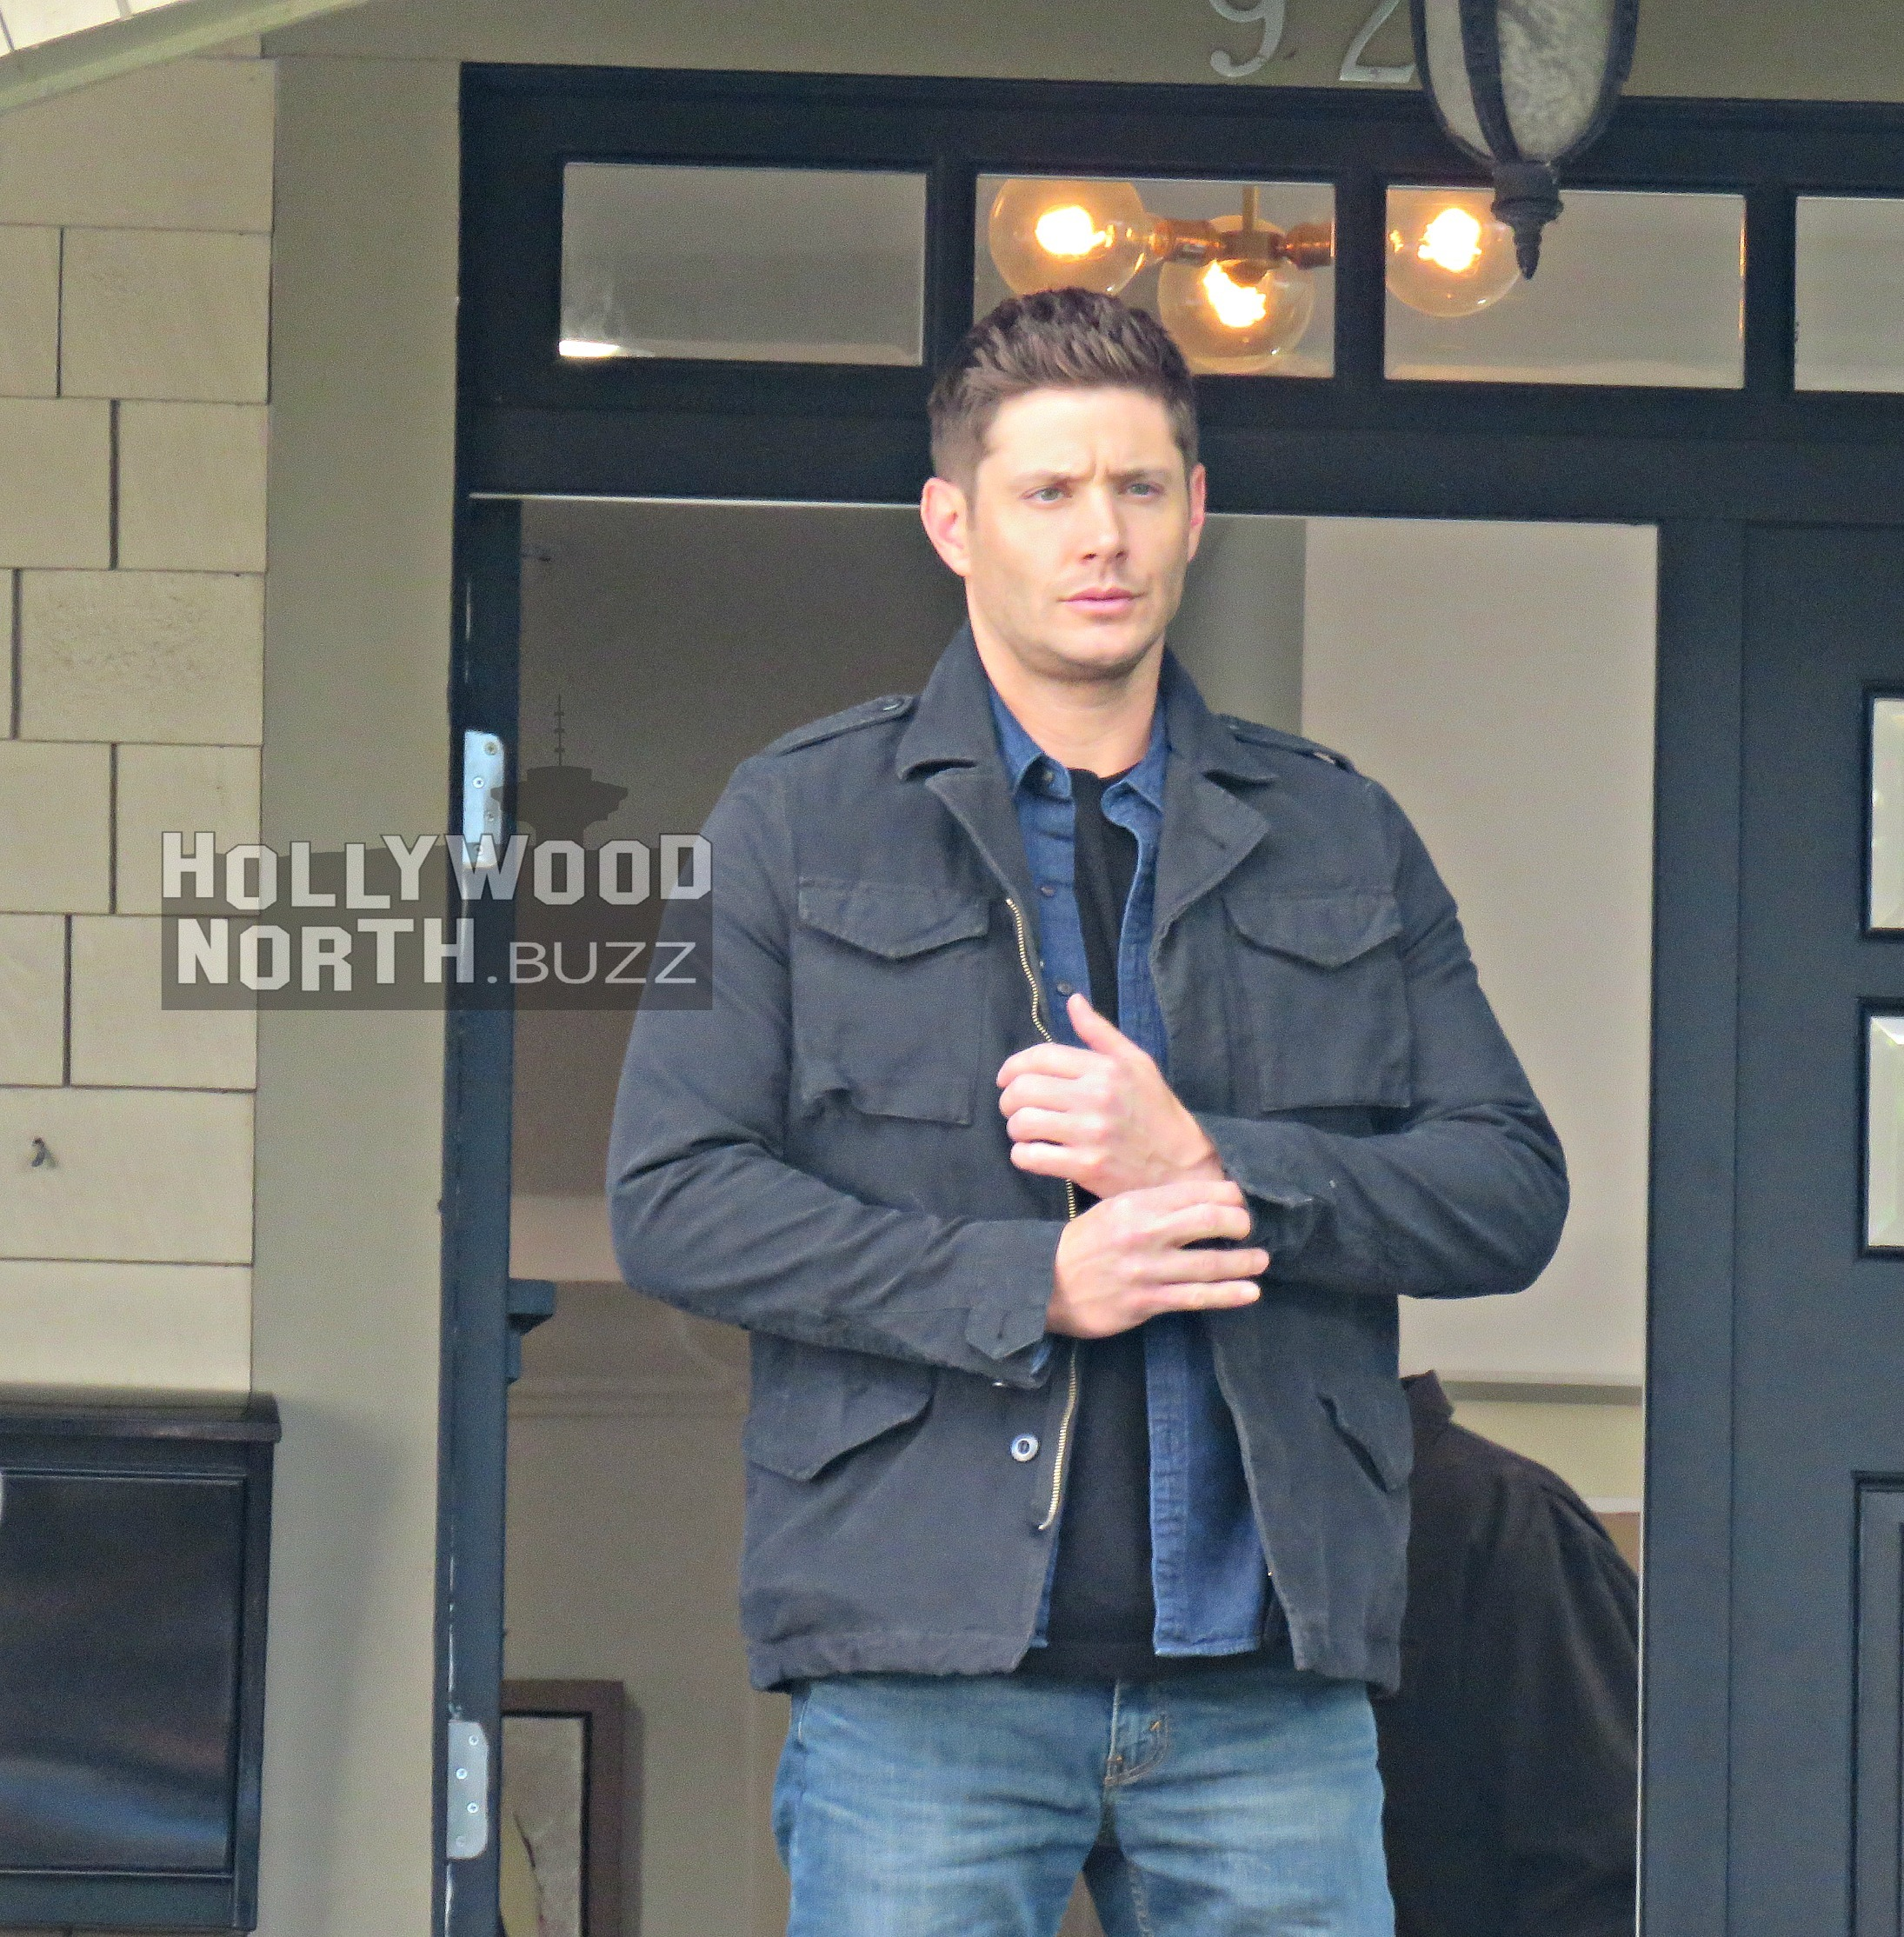 https://i1.wp.com/yvrshoots.com/wp-content/uploads/2017/08/a-spn-blue-steel-2.jpg